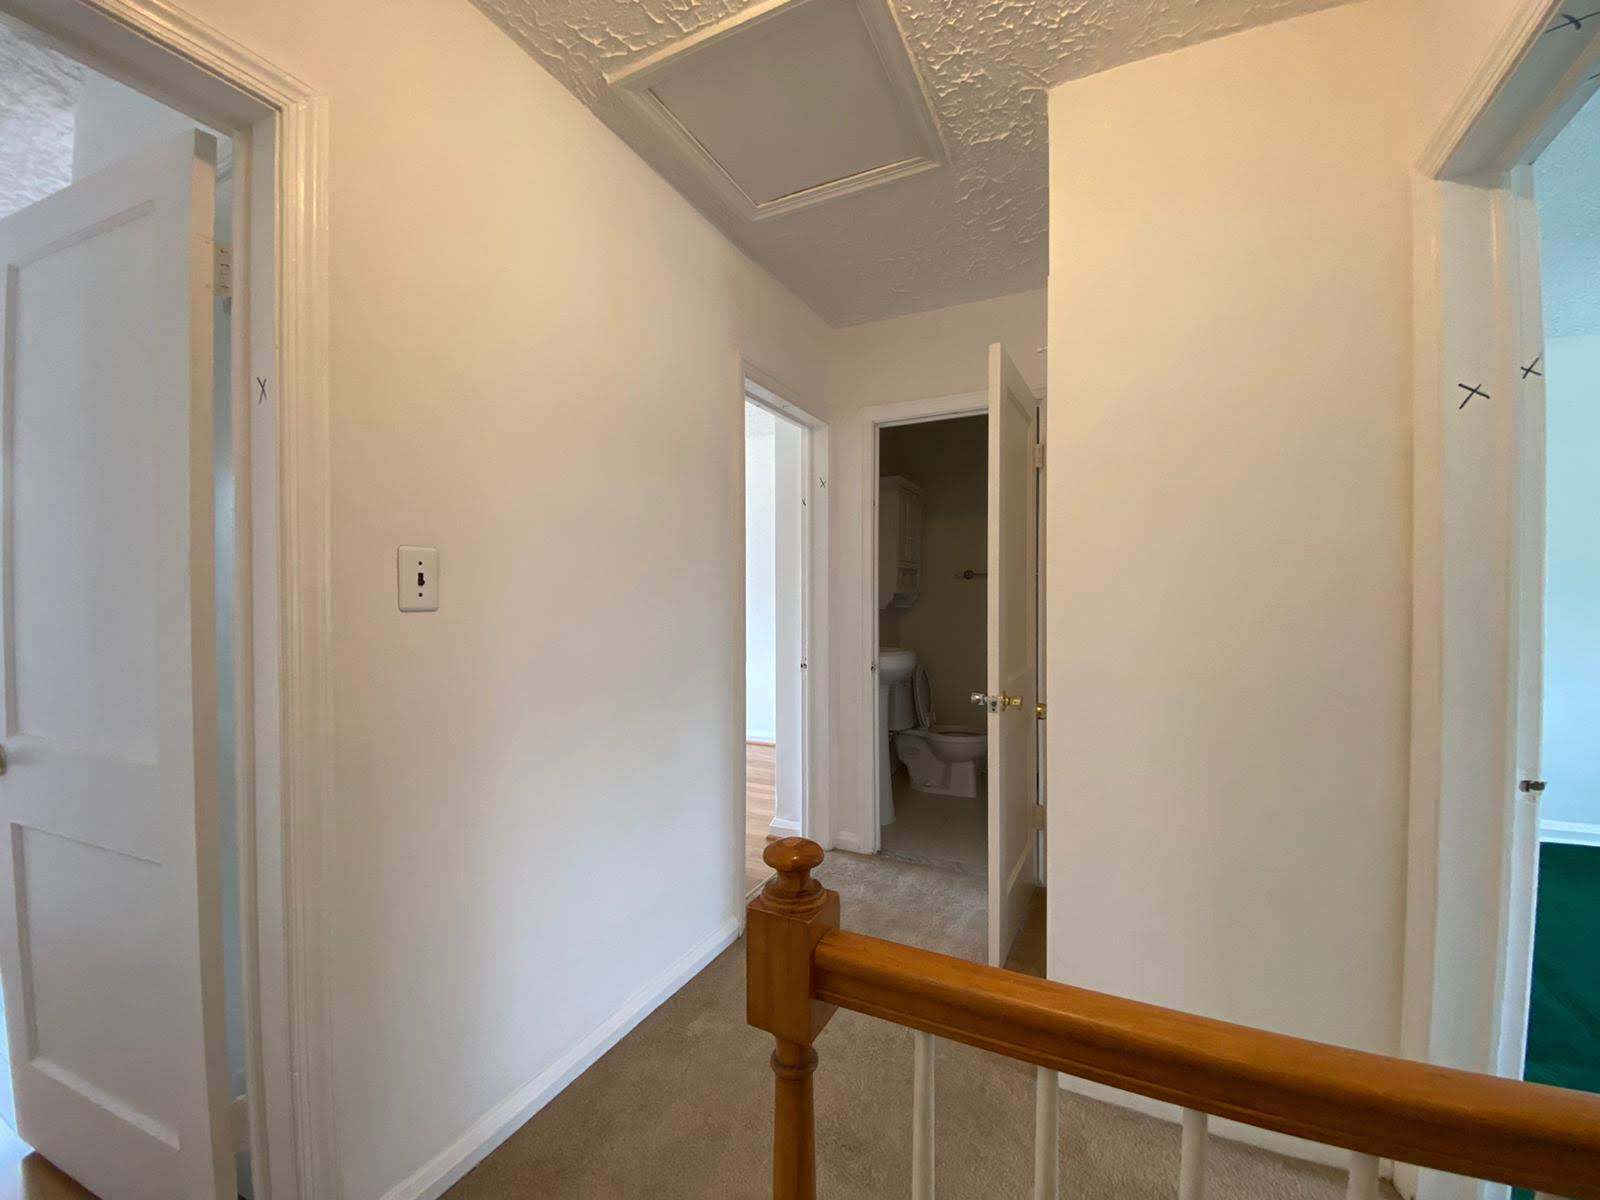 Upstairs at 8357 Ridgely Oak Rd Home in Baltimore